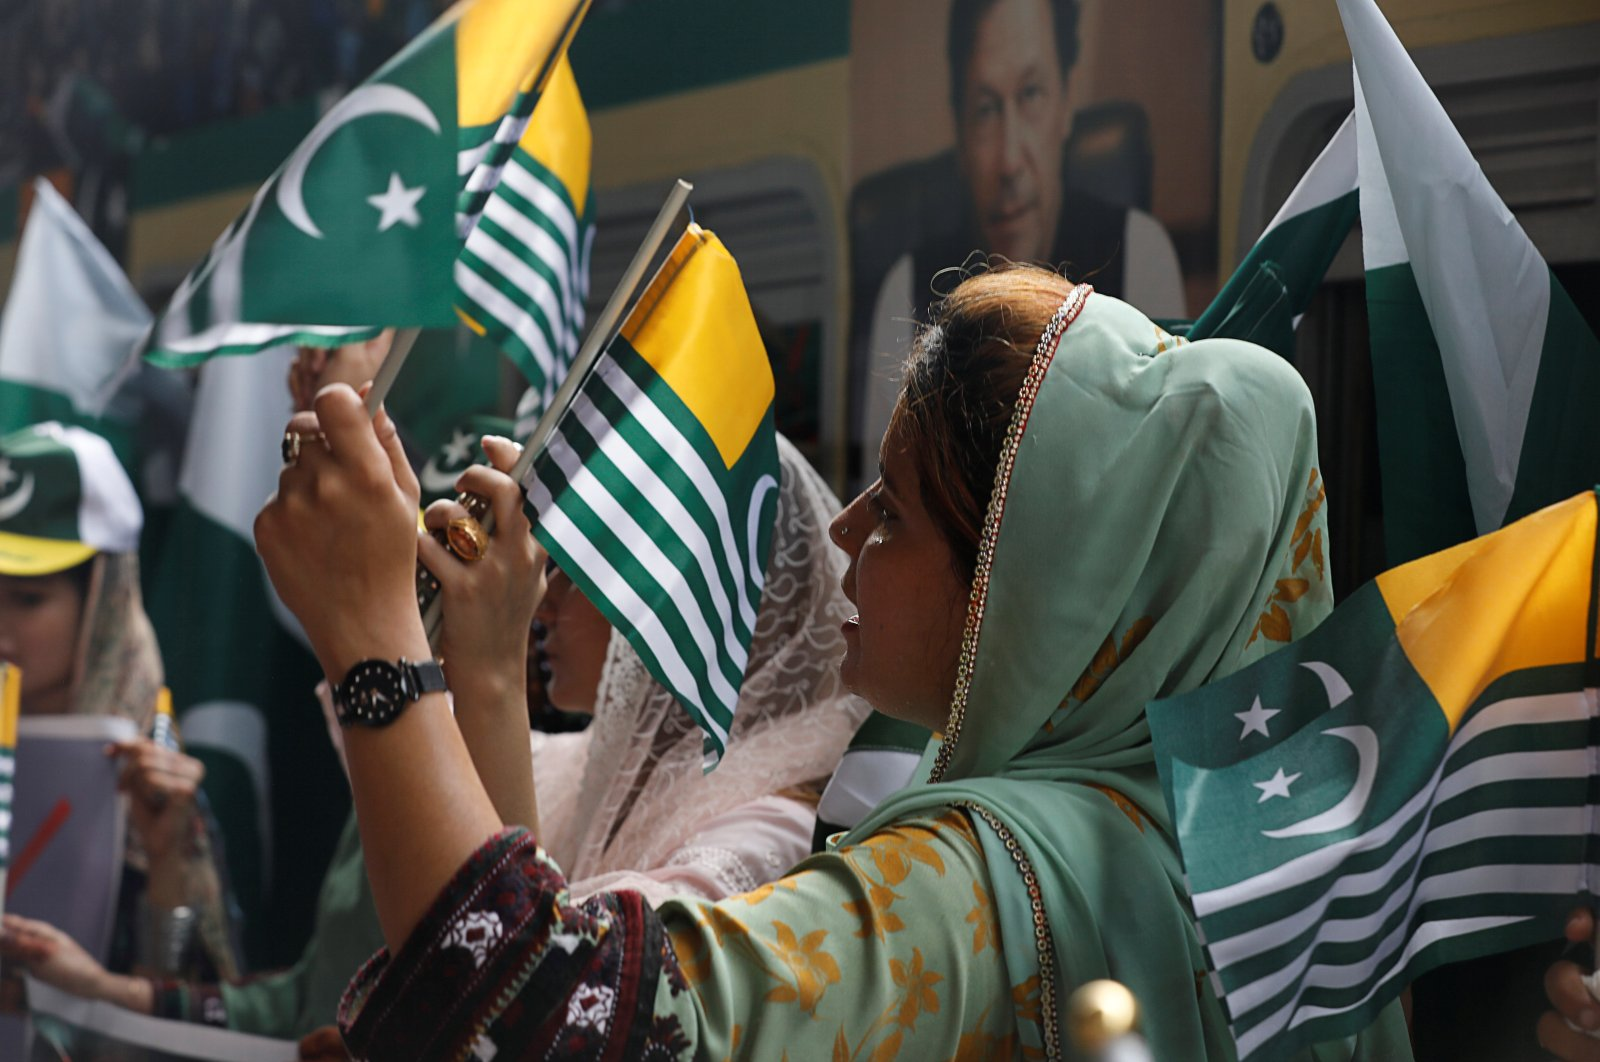 """A woman waves flags with others as they mark the """"Day of Exploitation in Kashmir"""" one year after the Indian government split the state of Jammu and Kashmir into two federally controlled territories and took away its special privileges, during a march in Karachi, Pakistan, Aug. 5, 2020. (Reuters Photo)"""